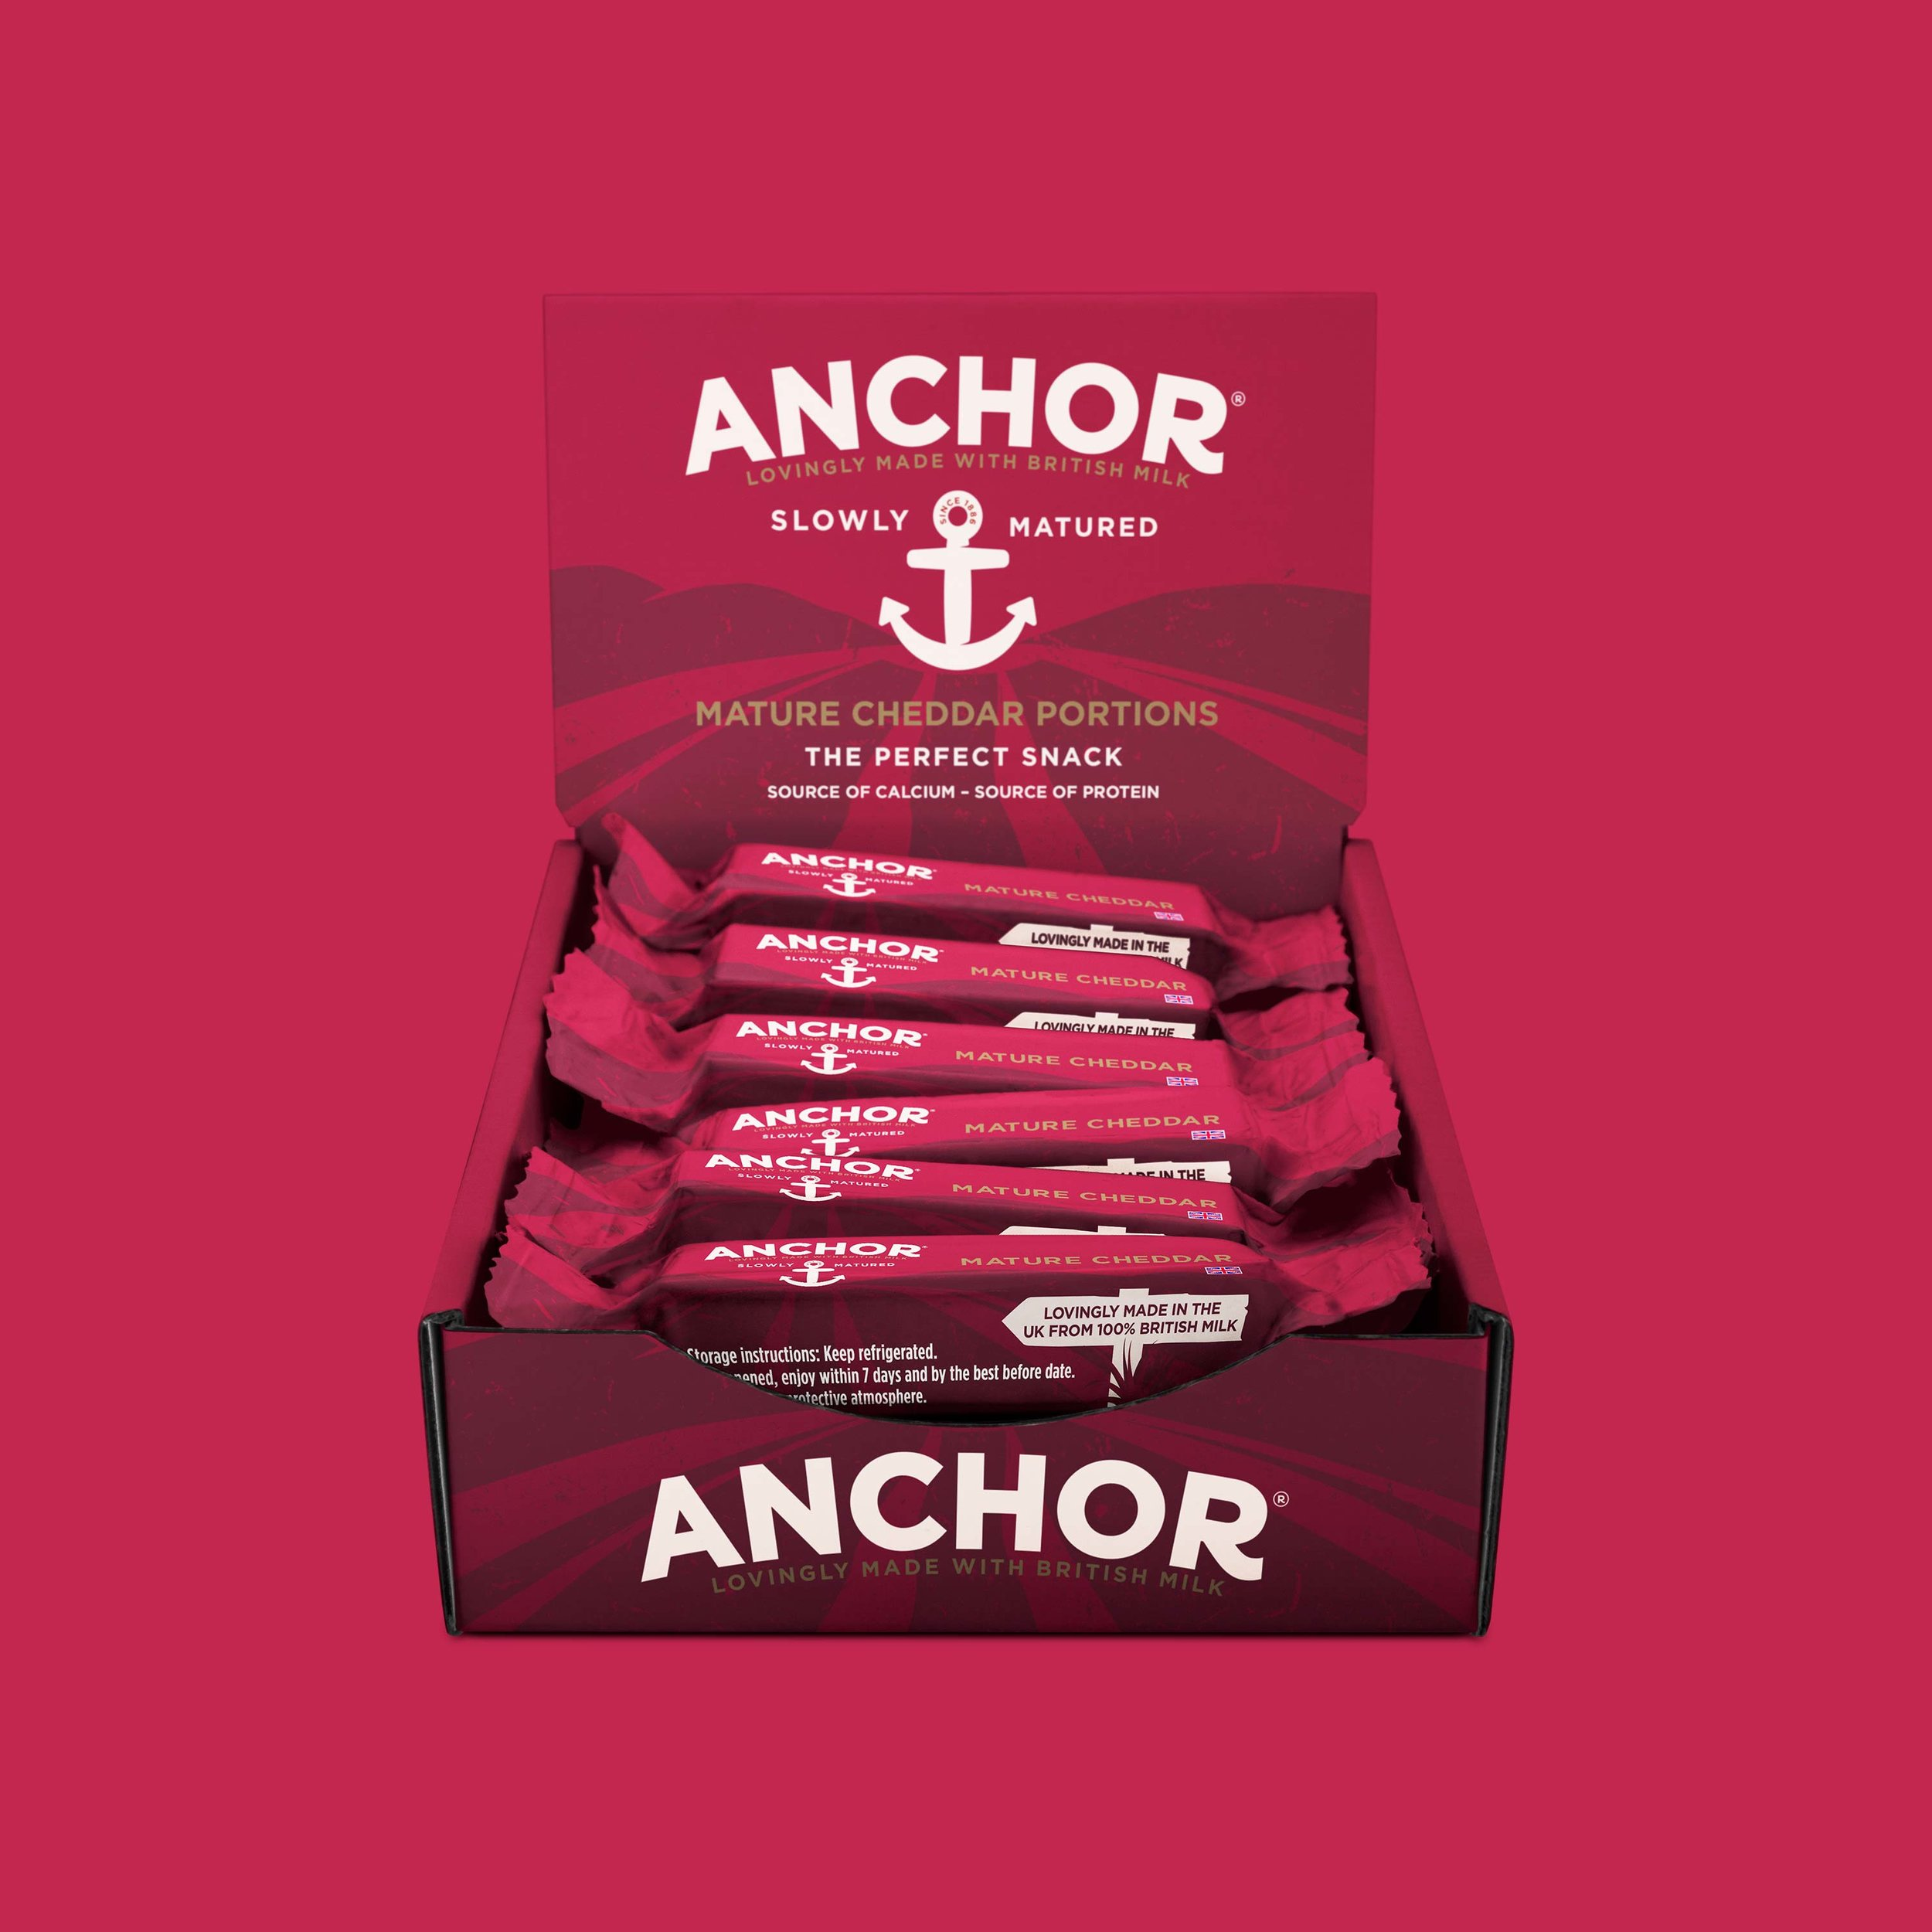 Arla-Anchor-Mature-Cheddar-Portions-SRP-Food-Packaging-Packaging-Prototype-Design.jpg